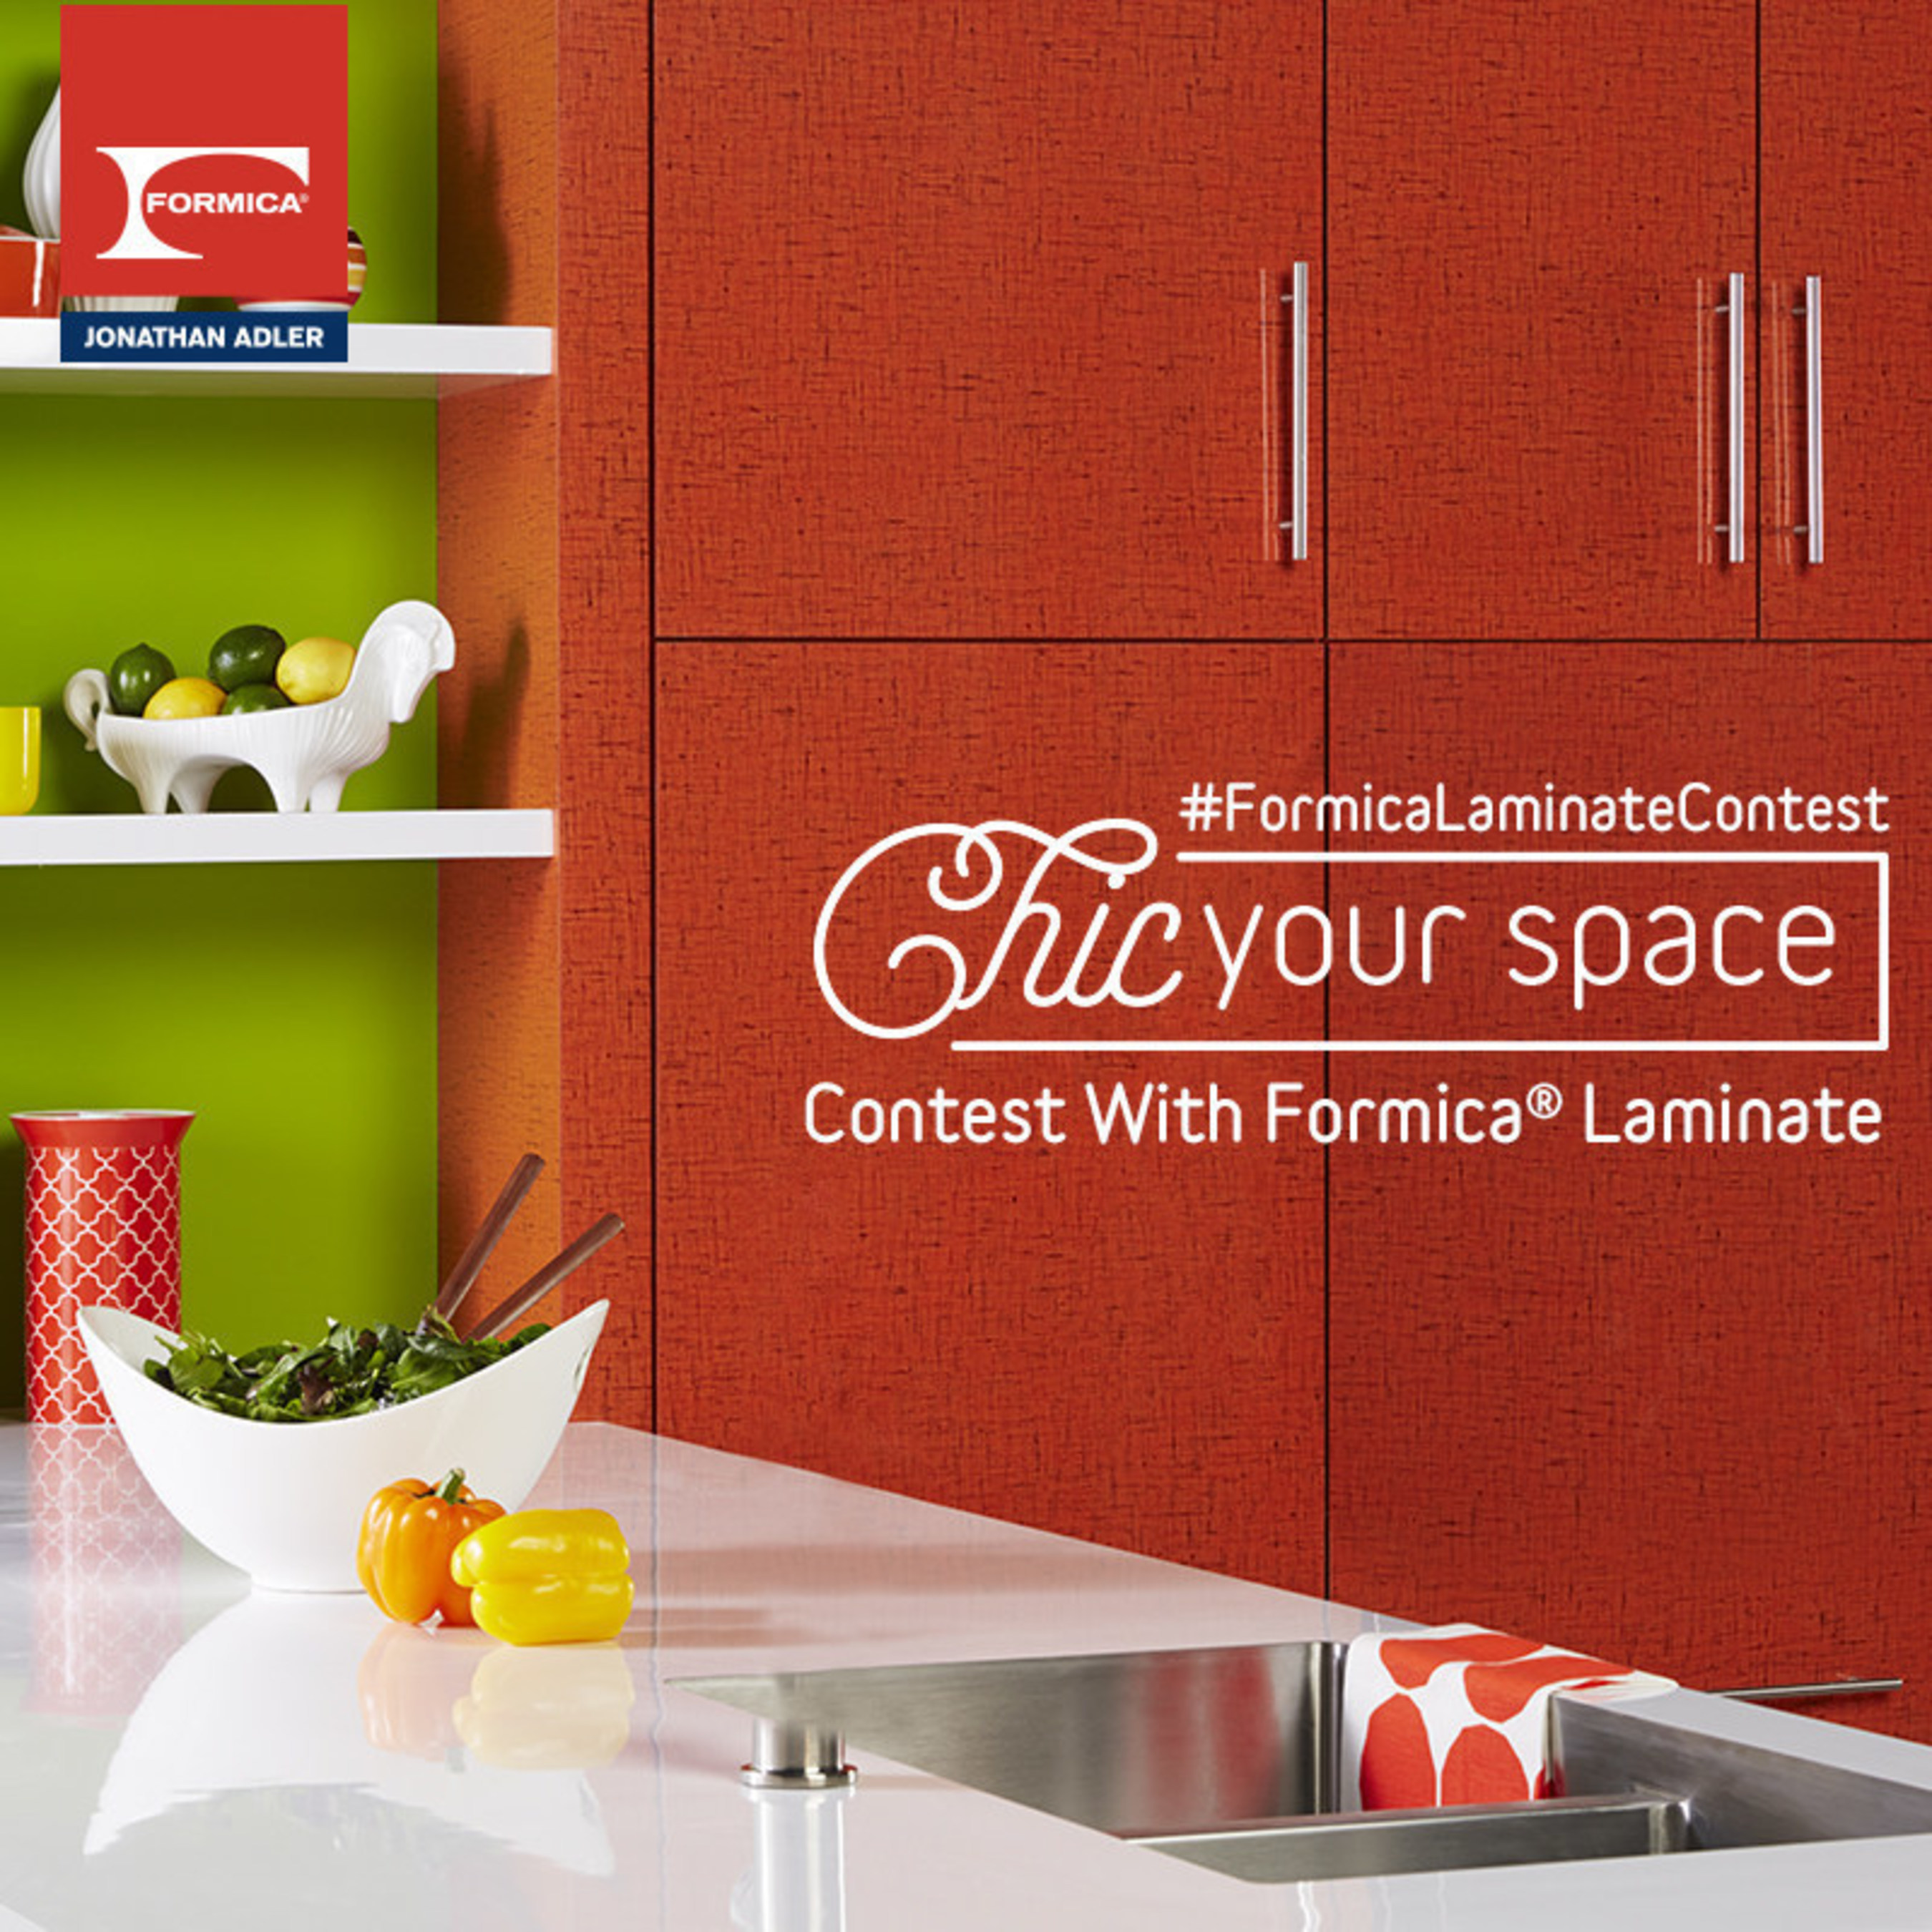 "Formica Corporation gives homeowners a chance to win a $10,000 room makeover with the Chic Your Space Contest With Formica(R) Laminate. To enter, users must simply share a photo of the space they want to ""chic"" using the hashtag #FormicaLaminateContest on Twitter or Instagram, or by direct upload to the contest page at Facebook.com/FormicaGroup. After confirming their entry, users will be entered into the contest."